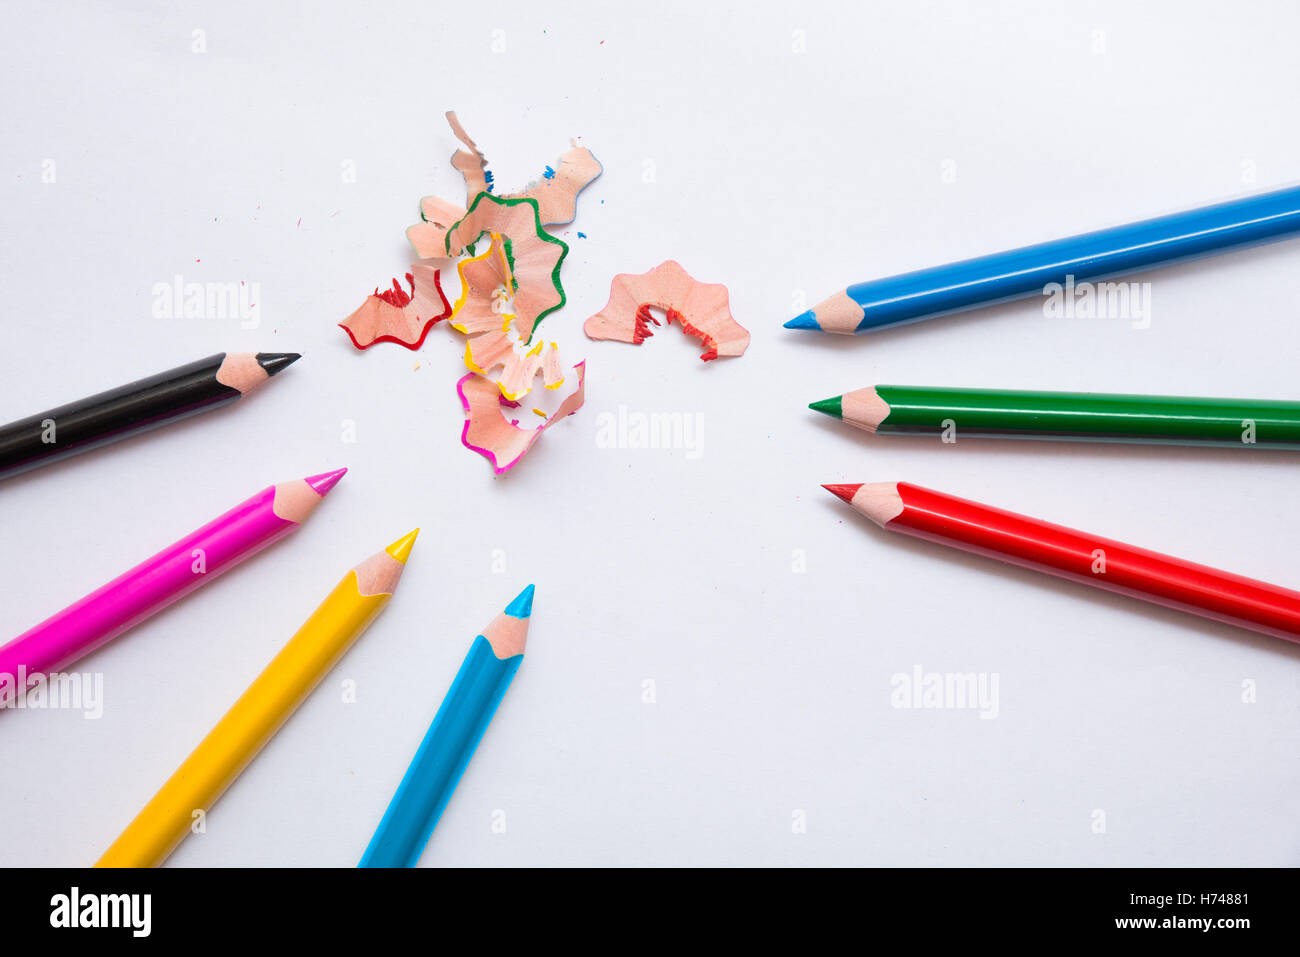 7 crayons and sharpener's peeling. Primary colors, RGB, CMYK - Stock Image